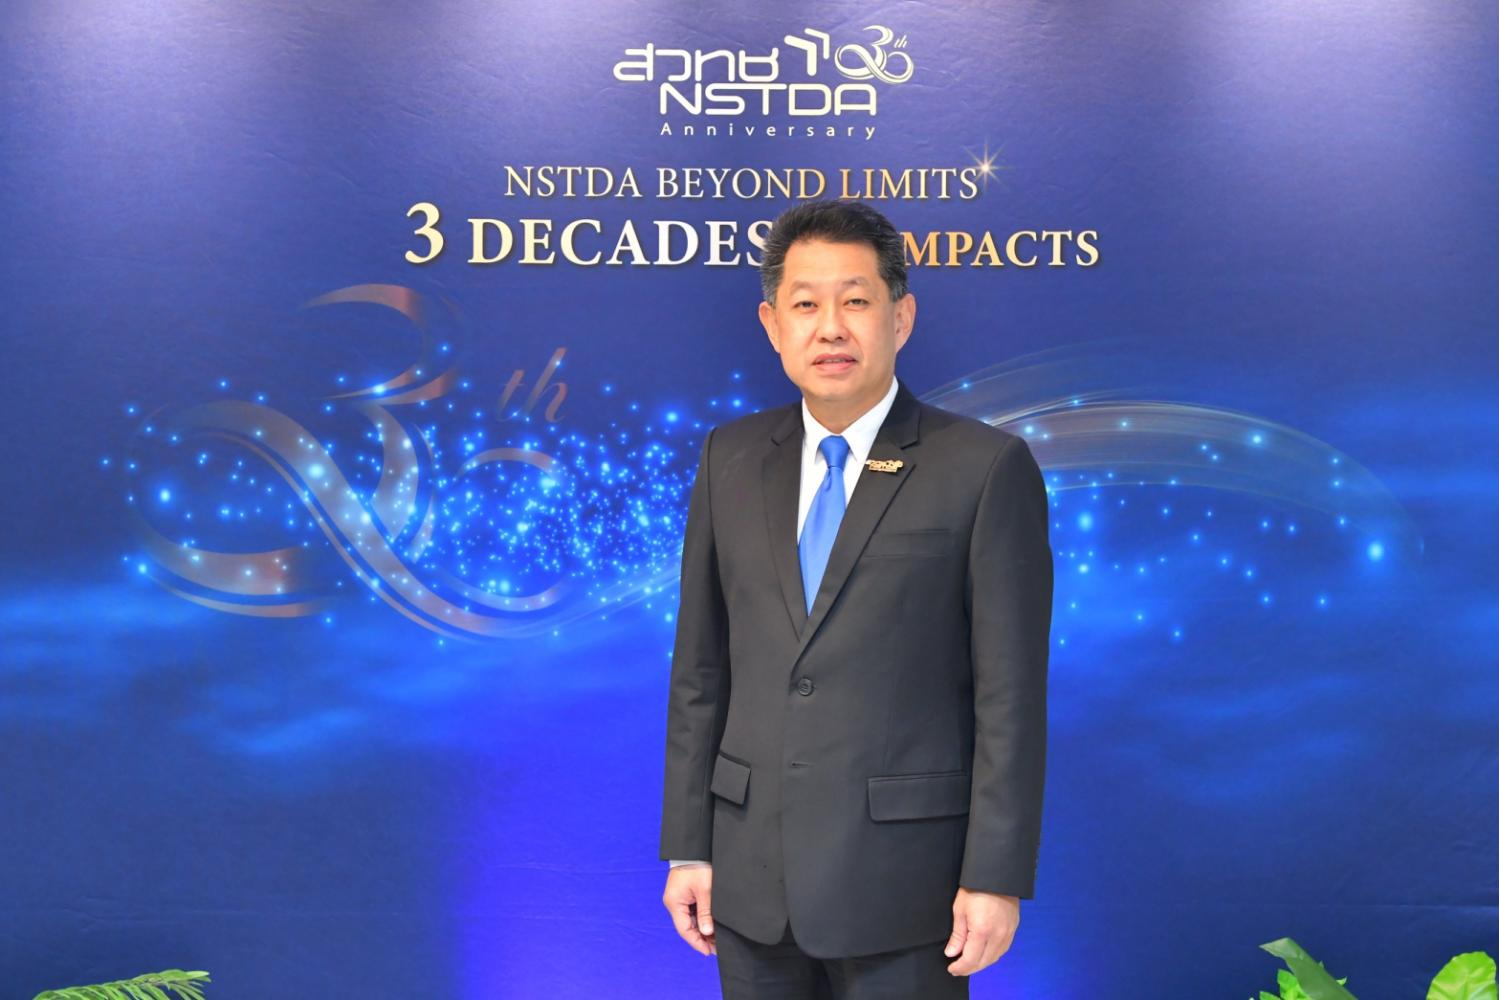 Mr Narong says the NSTDA will leverage science and technology to combat the pandemic.